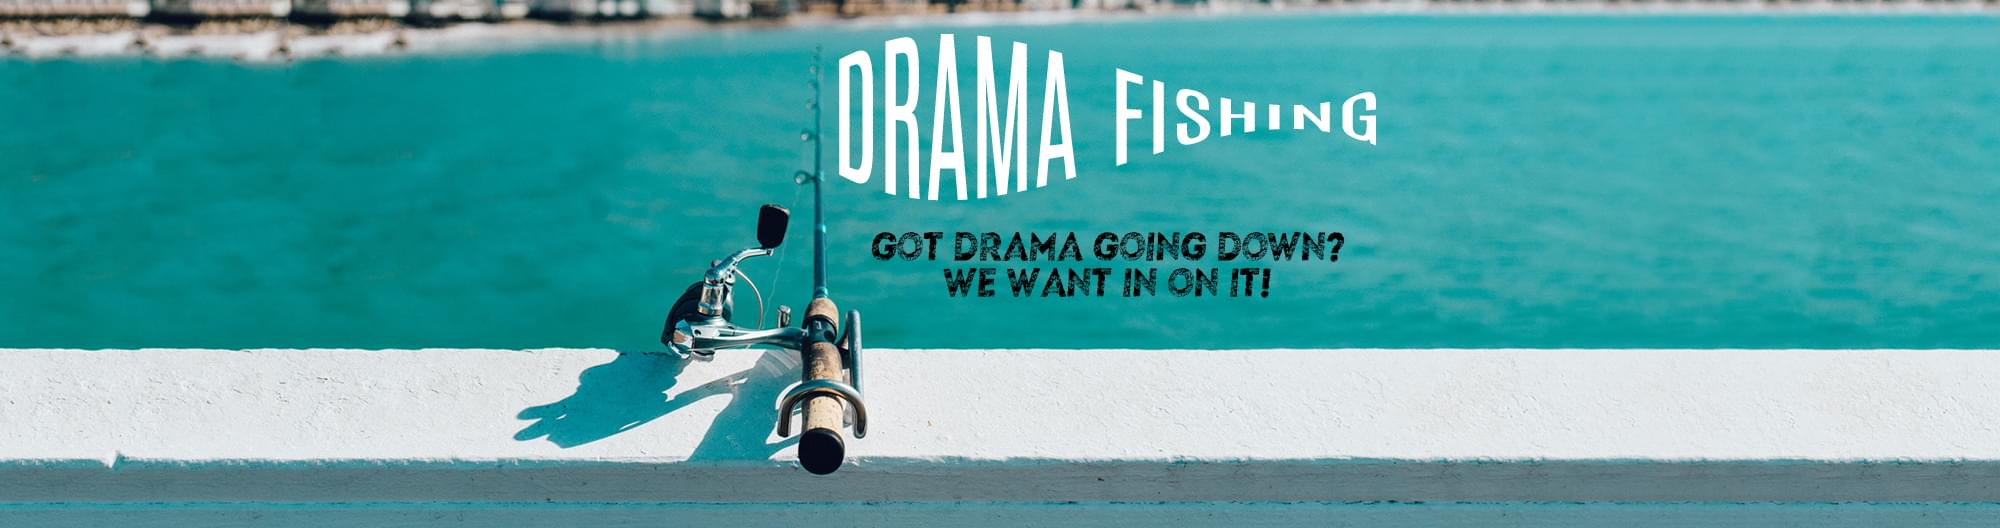 DRAMA FISHING: SHE WANTS TO ASK OUT HER FORMER BOSS